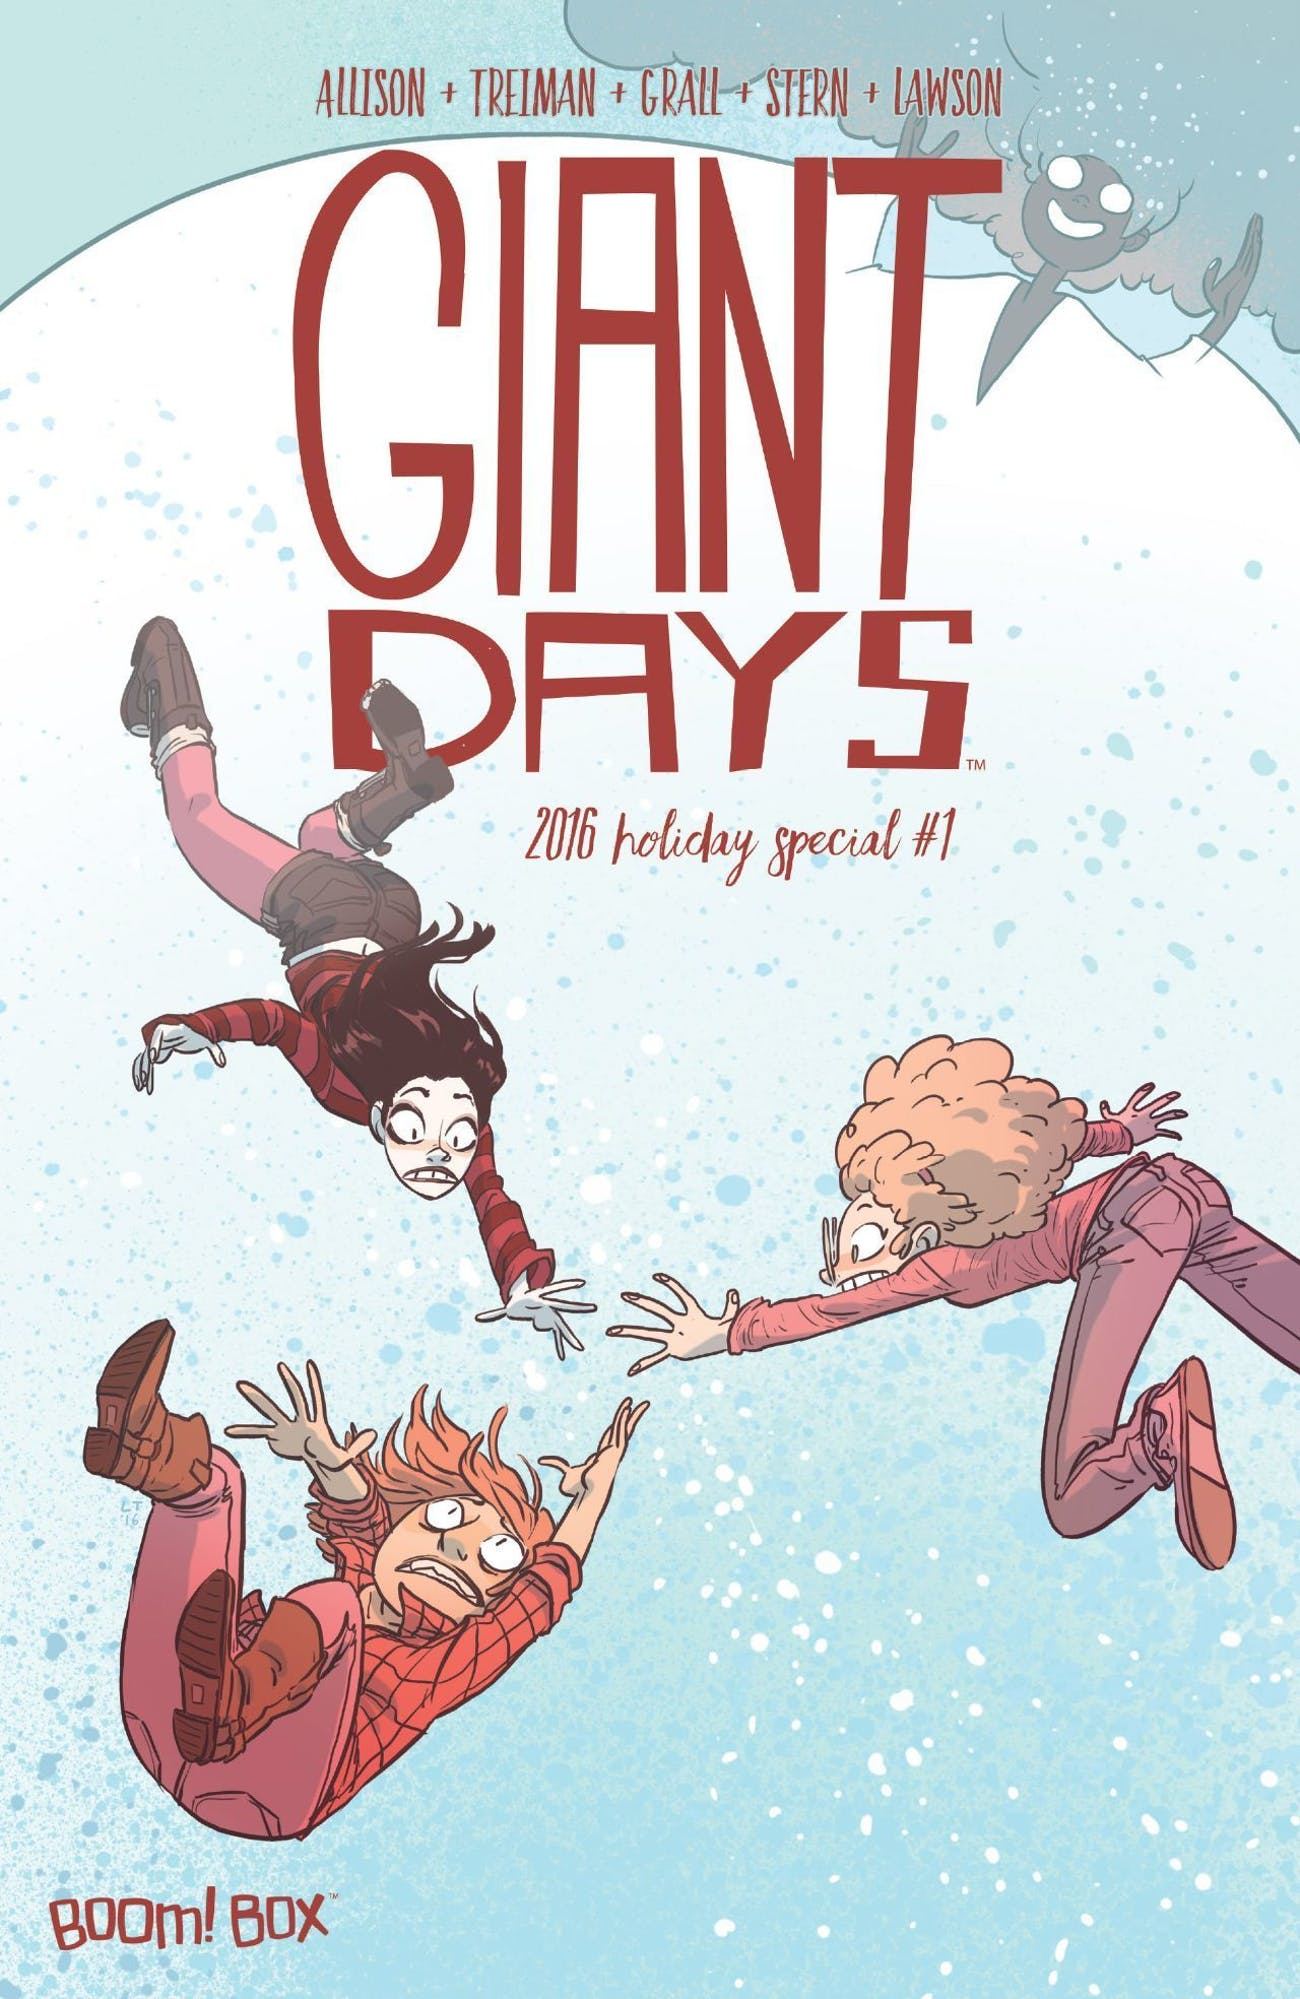 Giant Days Holiday Special #1 2016 from Boom! Studios